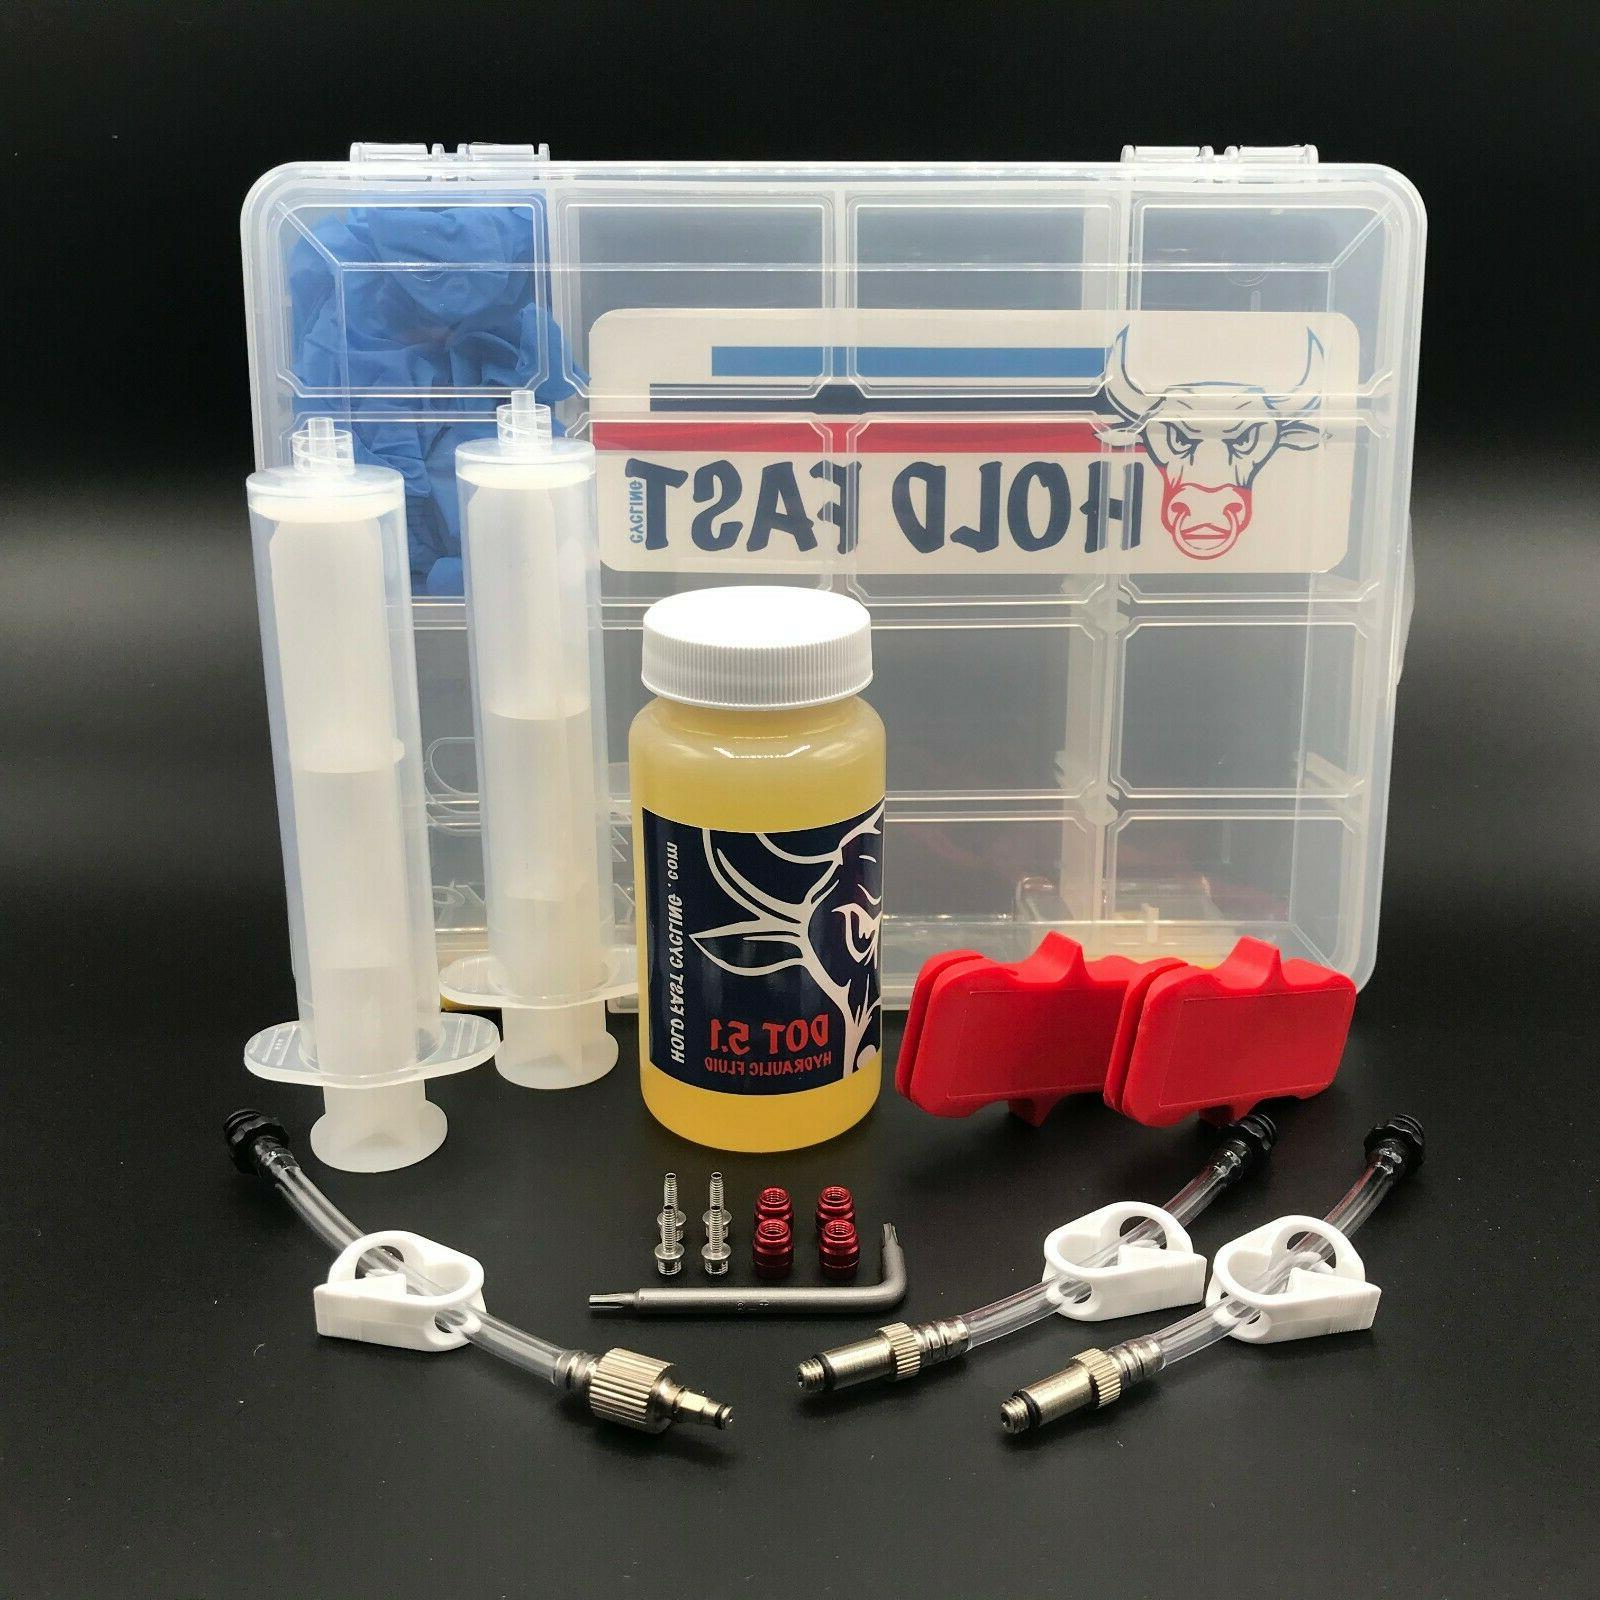 bleed kits w edge tool 5 options